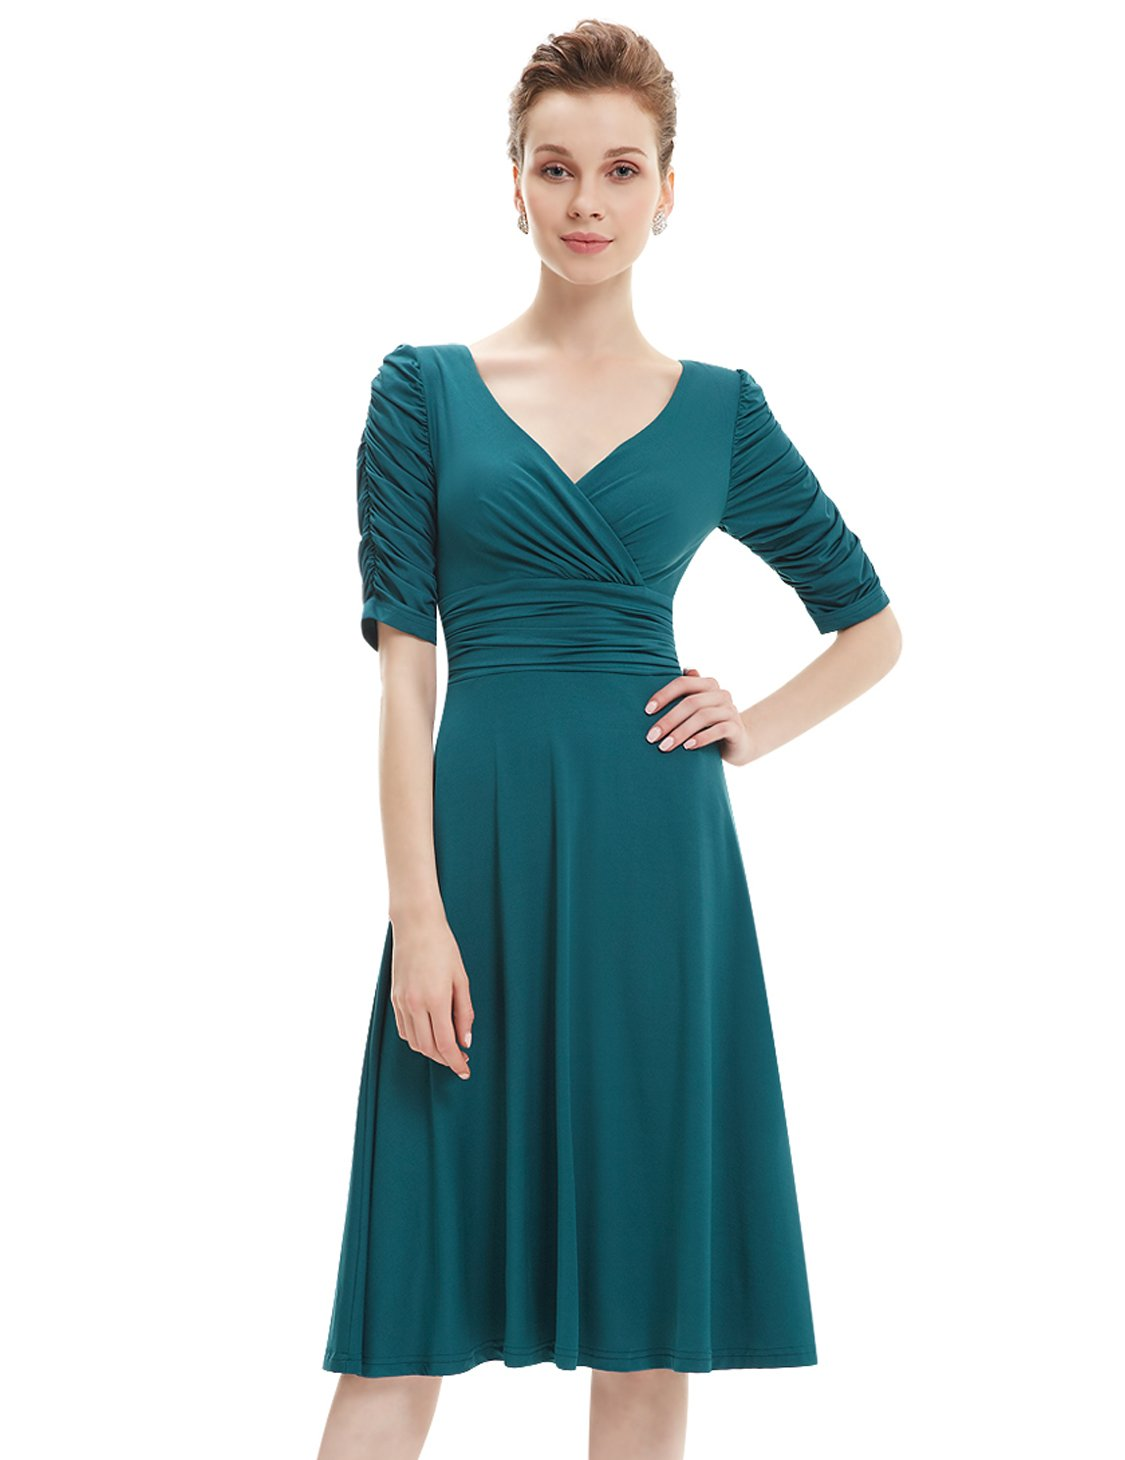 Ever-Pretty Womens Ruched Waist Casual Knee Length Party Dress 6 US Teal